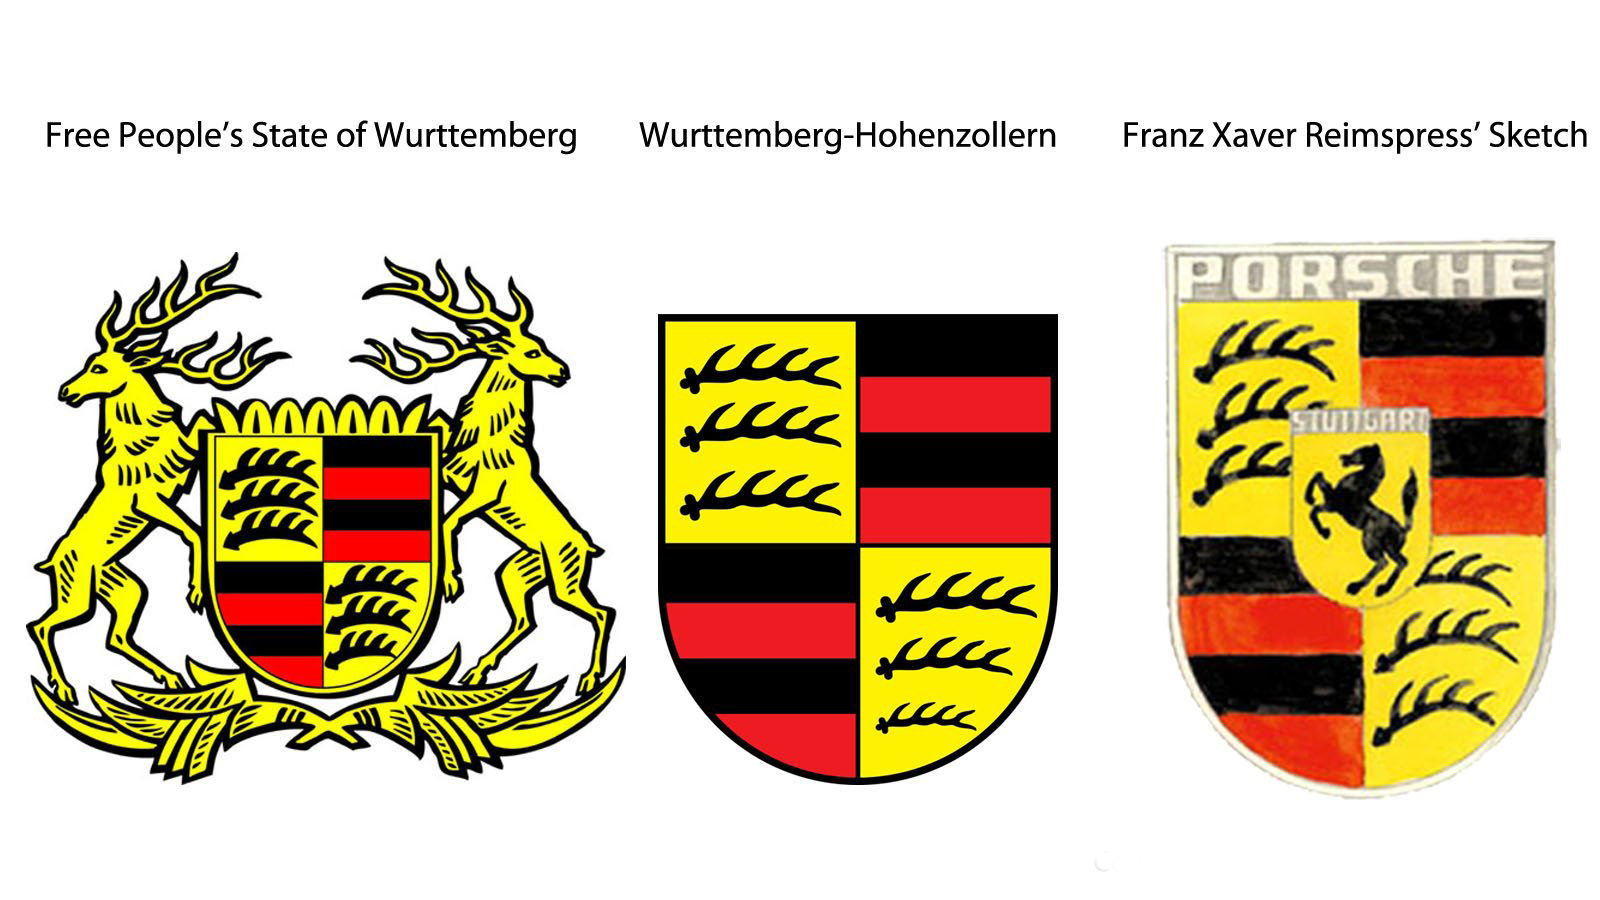 5 Facts About the History of the Porsche Logo